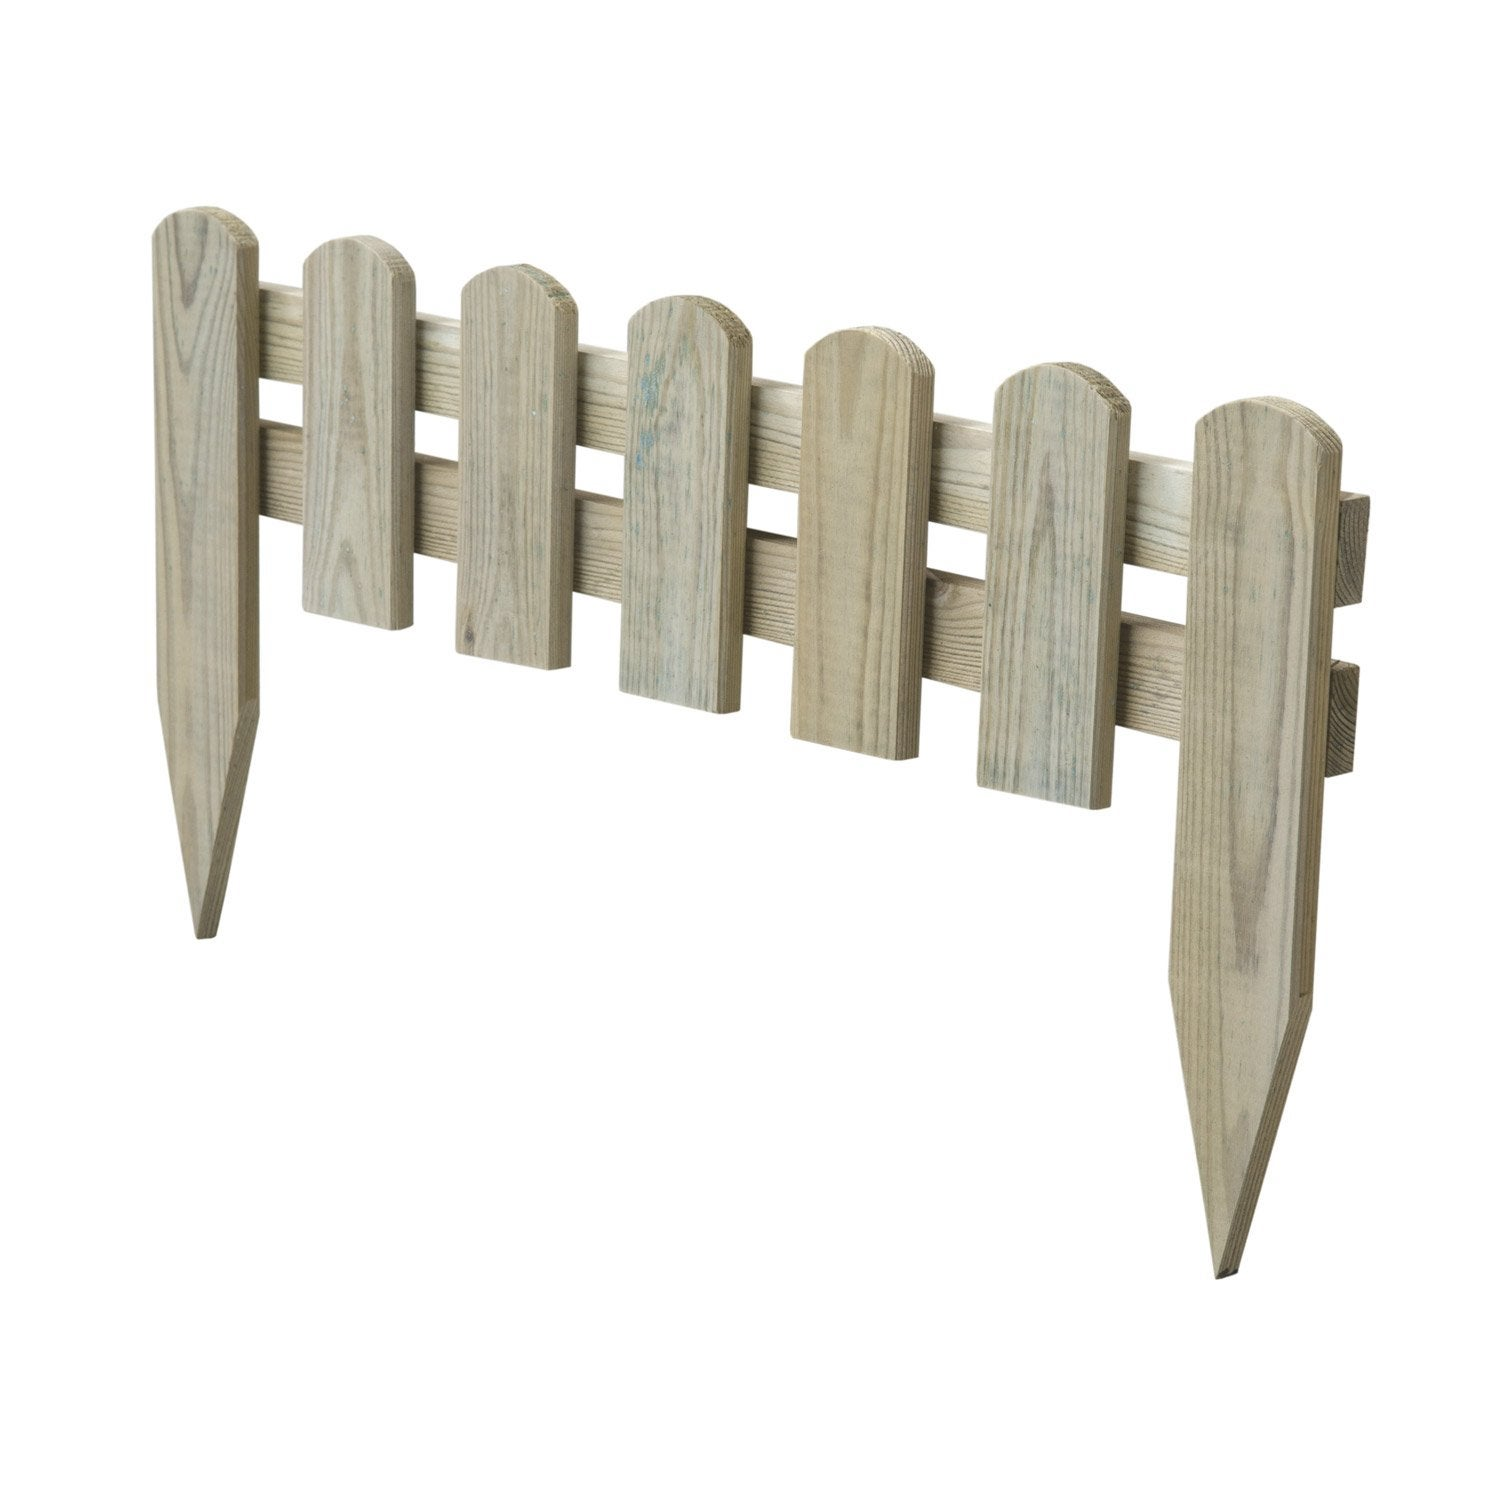 Bordure planter stackette bois naturel x cm leroy merlin - Leroy merlin jardiniere bois ...